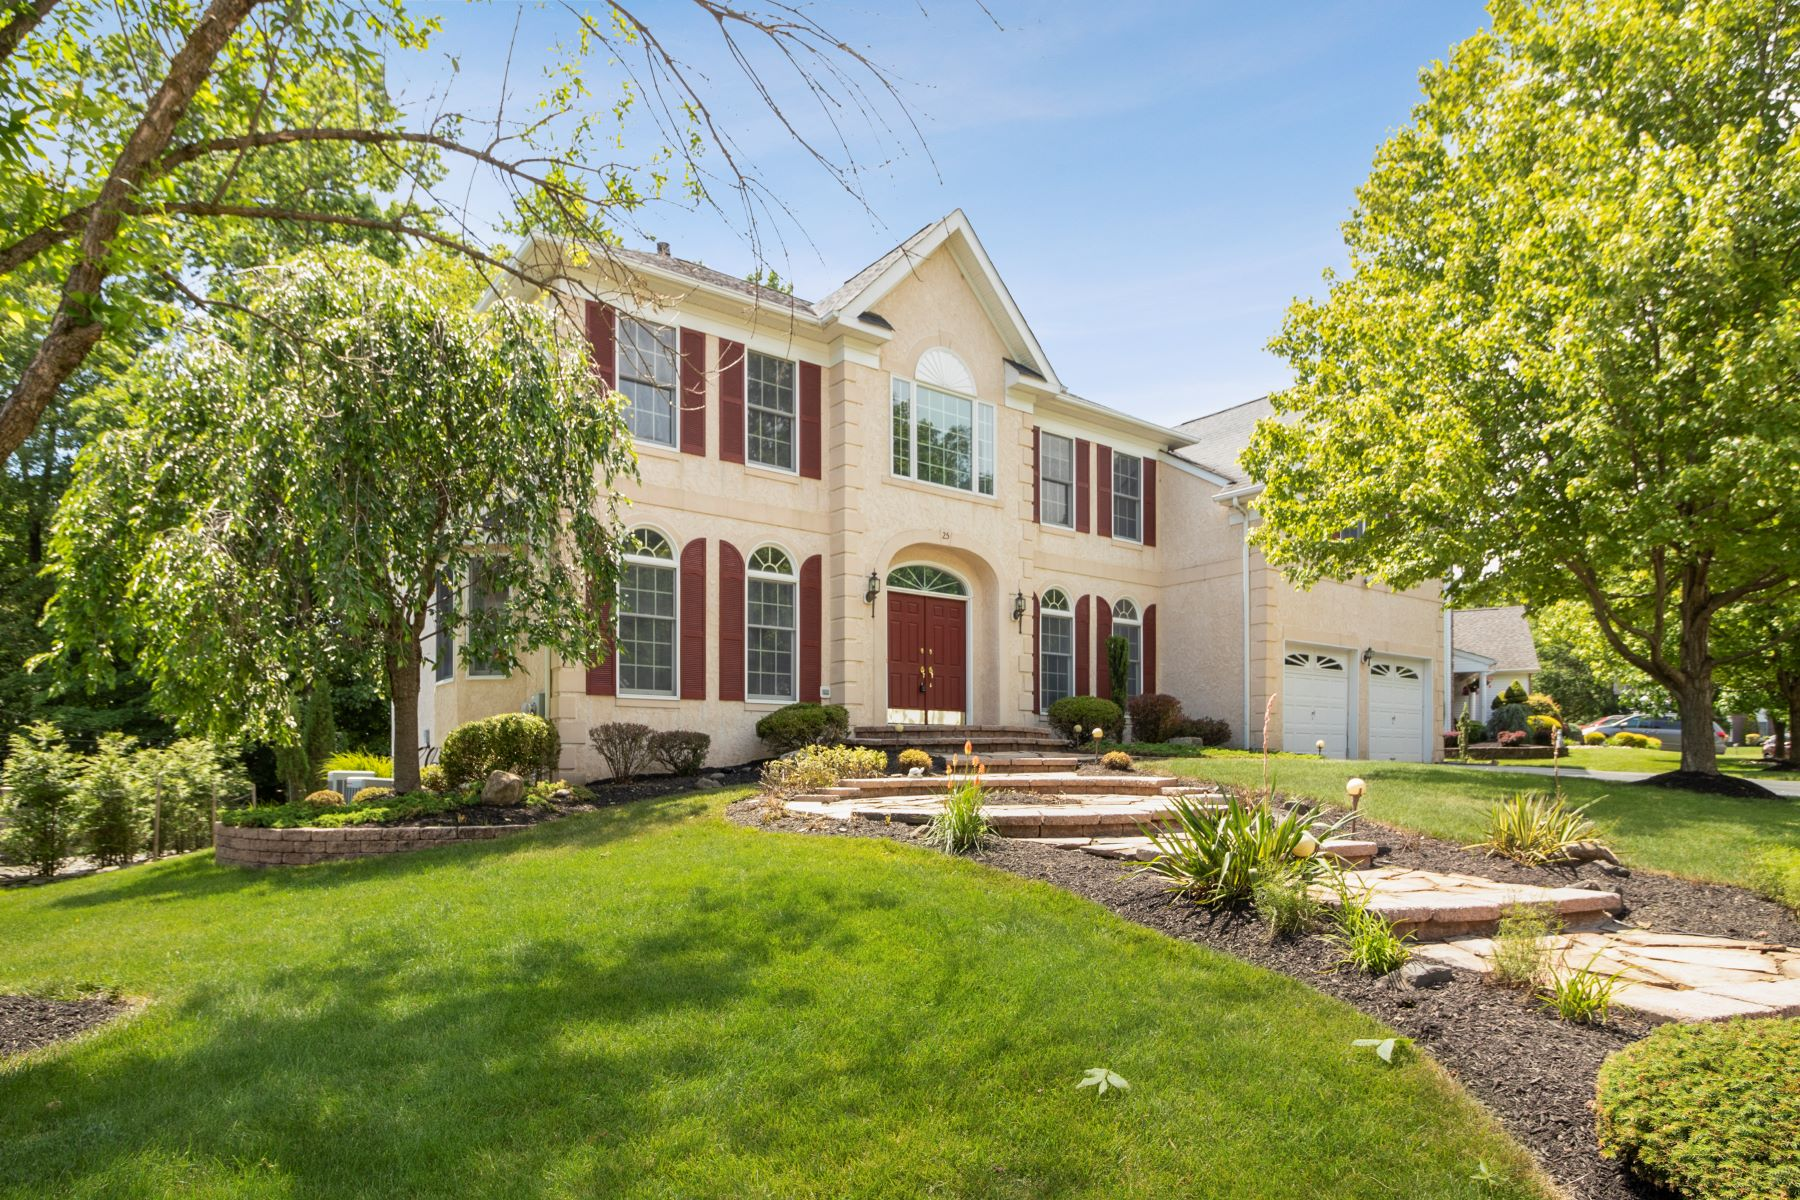 Single Family Homes for Sale at Northeast-Facing 4/5 Bedroom in The Preserve 25 Rocky Hill Road, Princeton, New Jersey 08540 United States